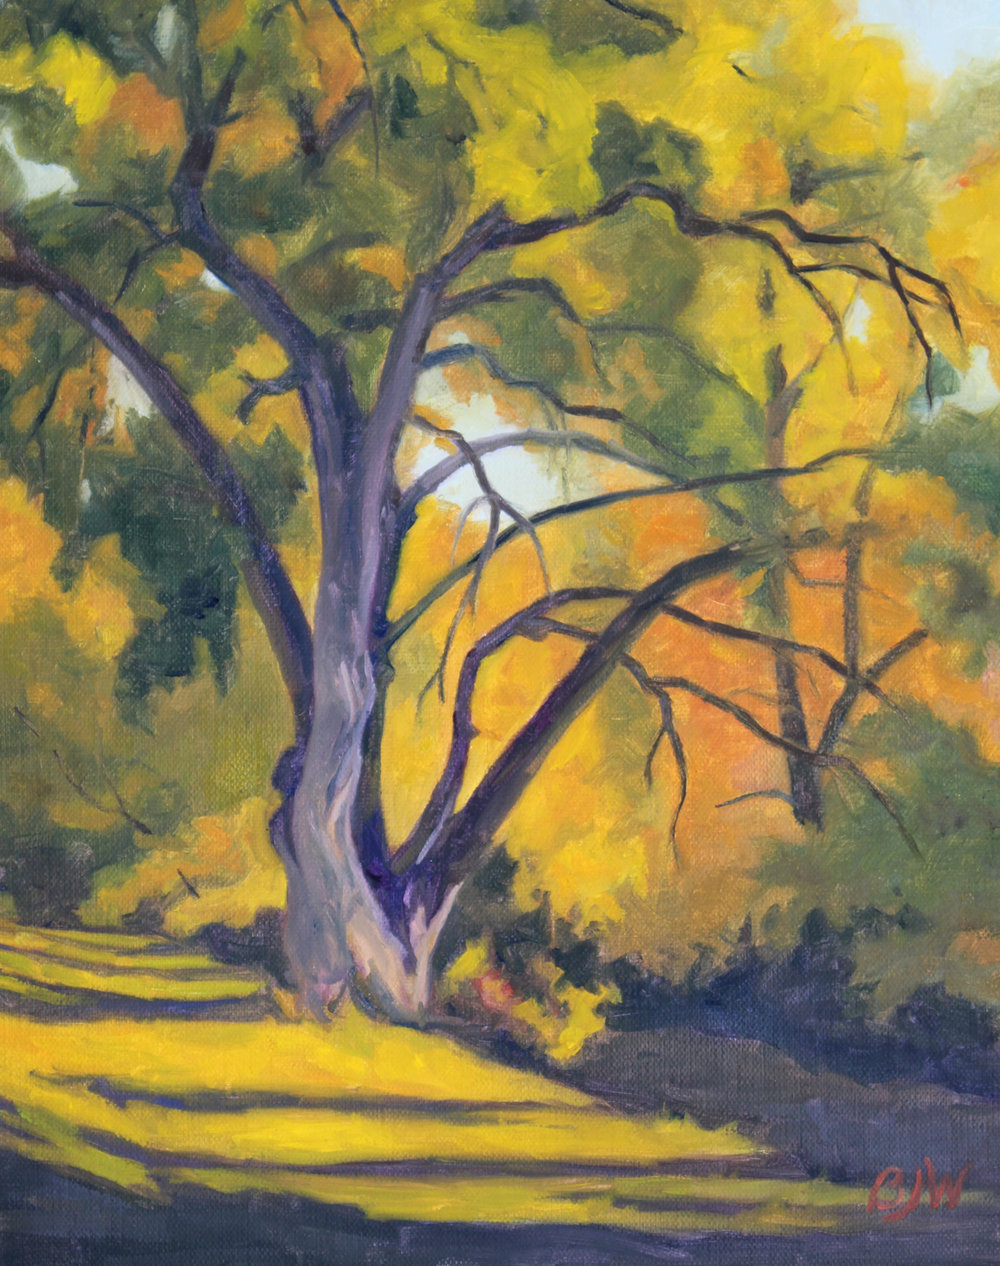 """High Line Shadows,"" by Betsy Johnson Welty, Oil on Canvas, 10"" x 8"""